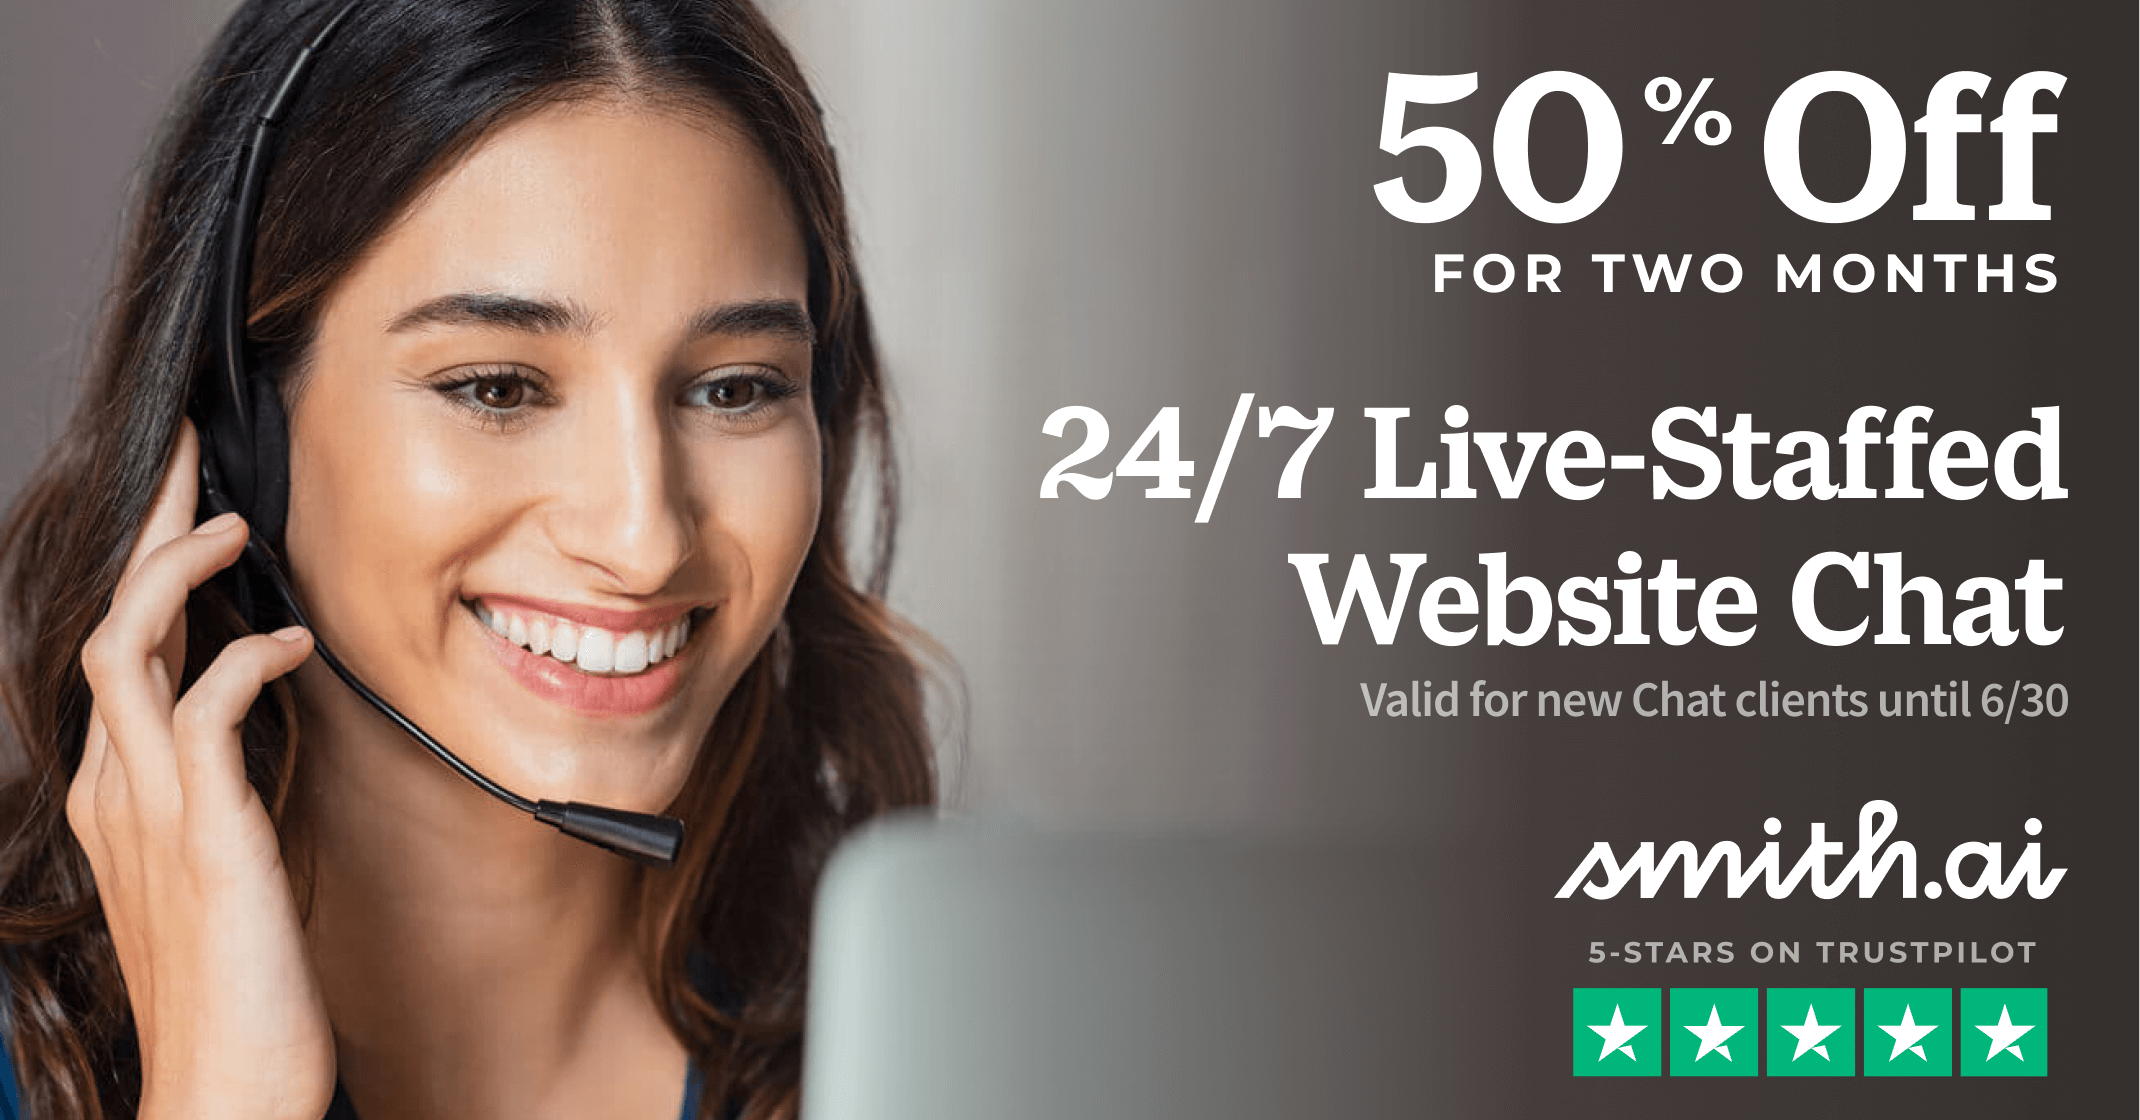 Get 50% Off Smith.ai Live Chat for 2 Months — Ends June 30, 2021